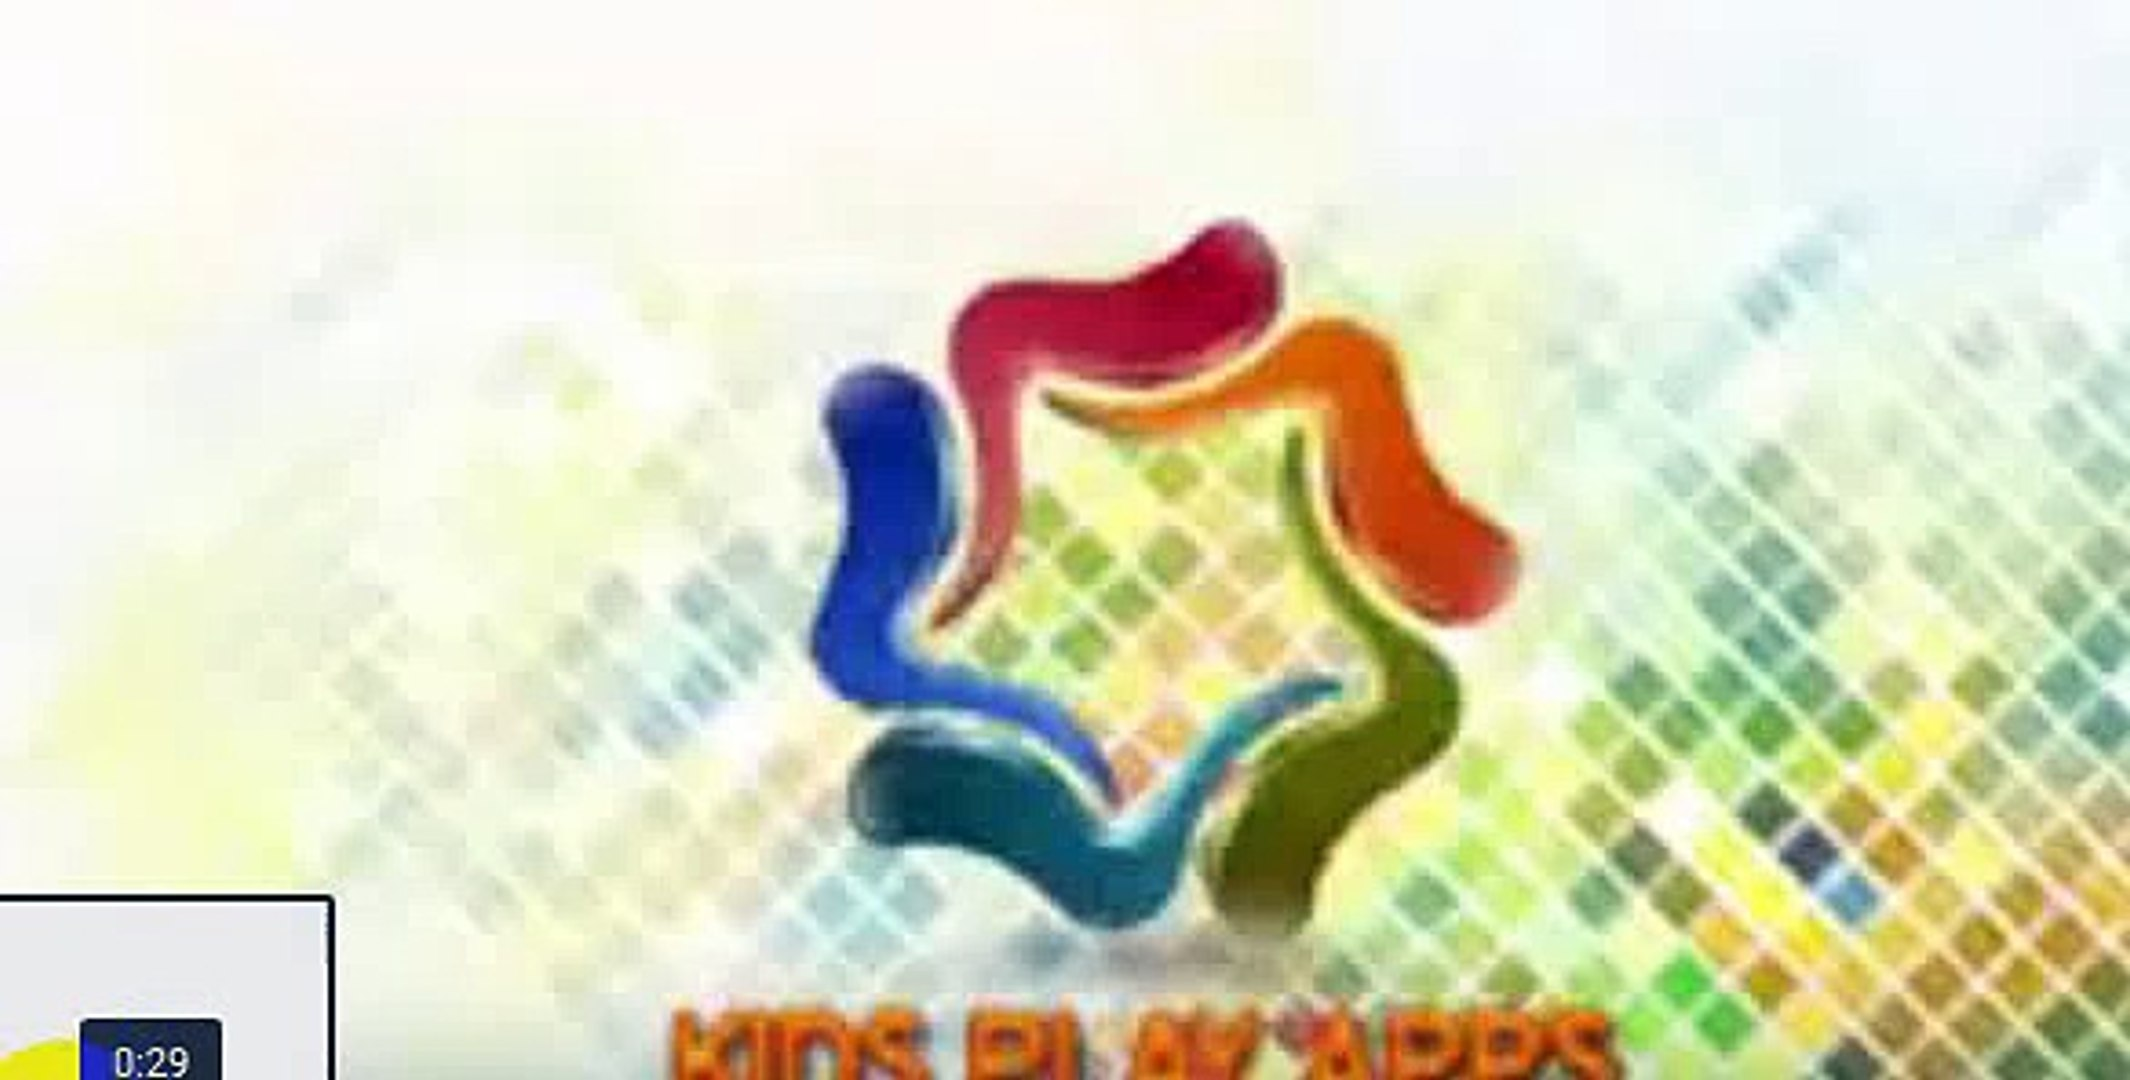 Create ABC with Play Doh Toy Education Learning - Kids Play Apps